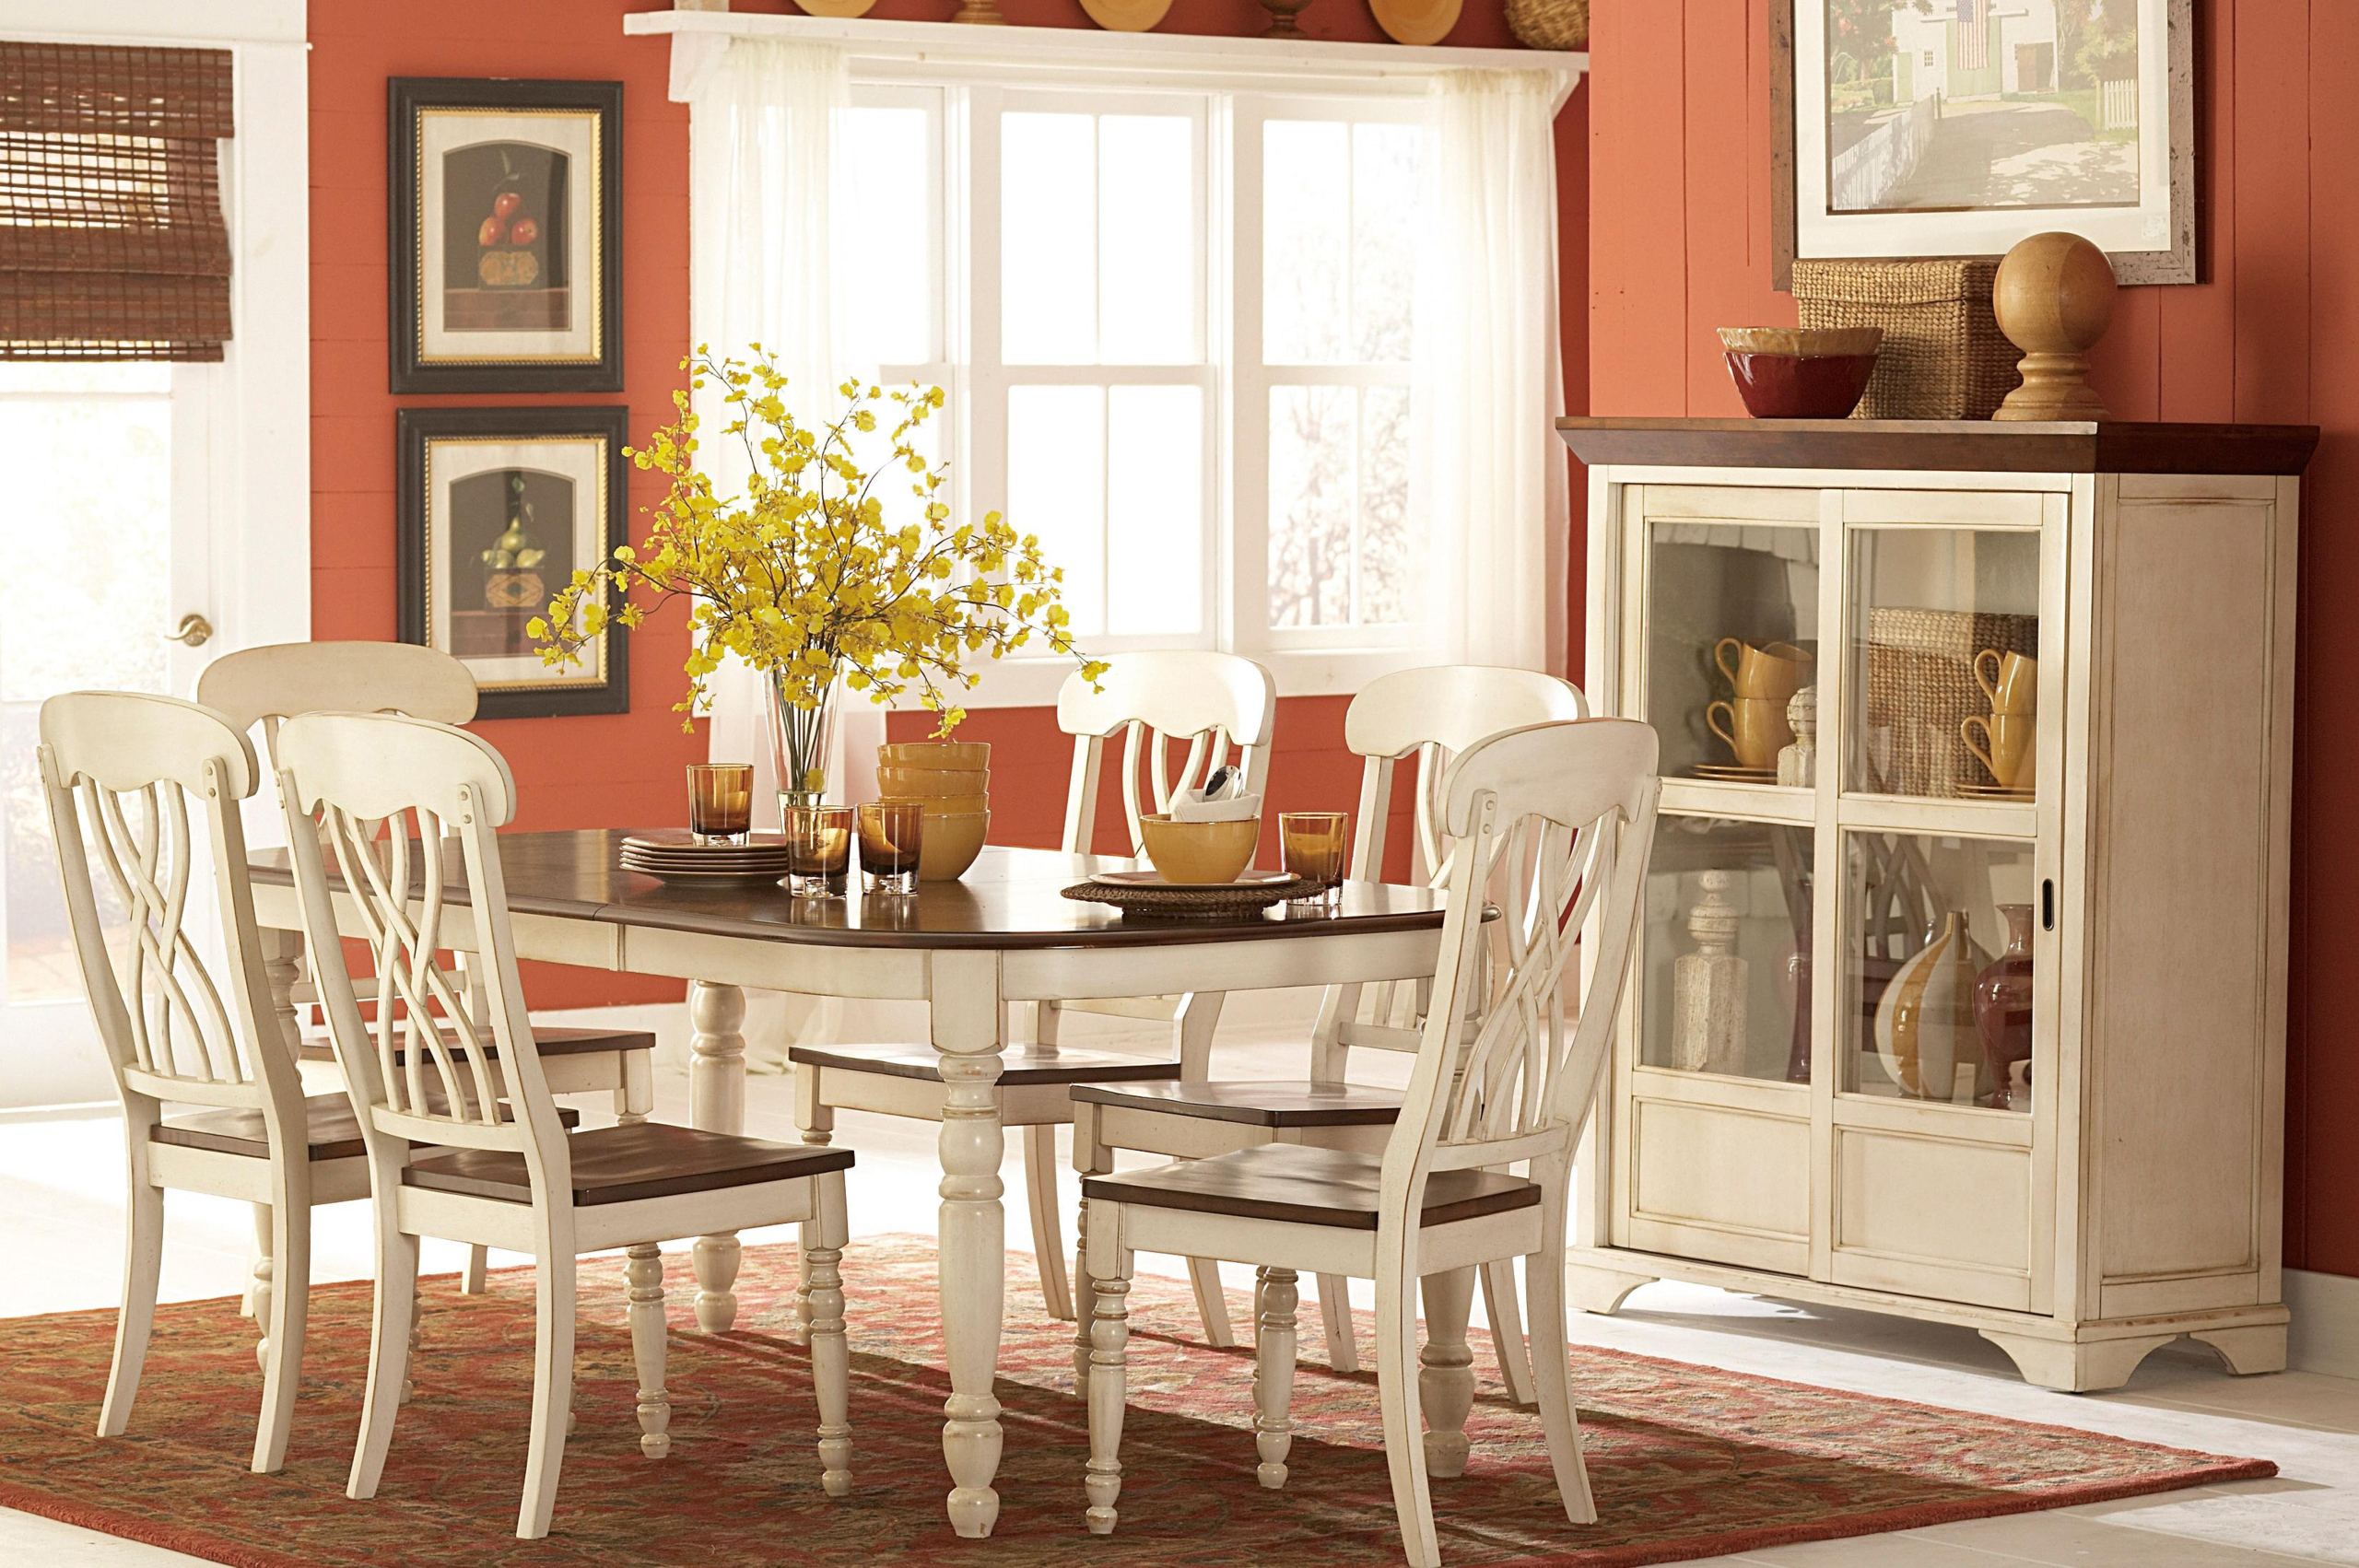 Butterfly Leaf Dining Table Ideas On Foter